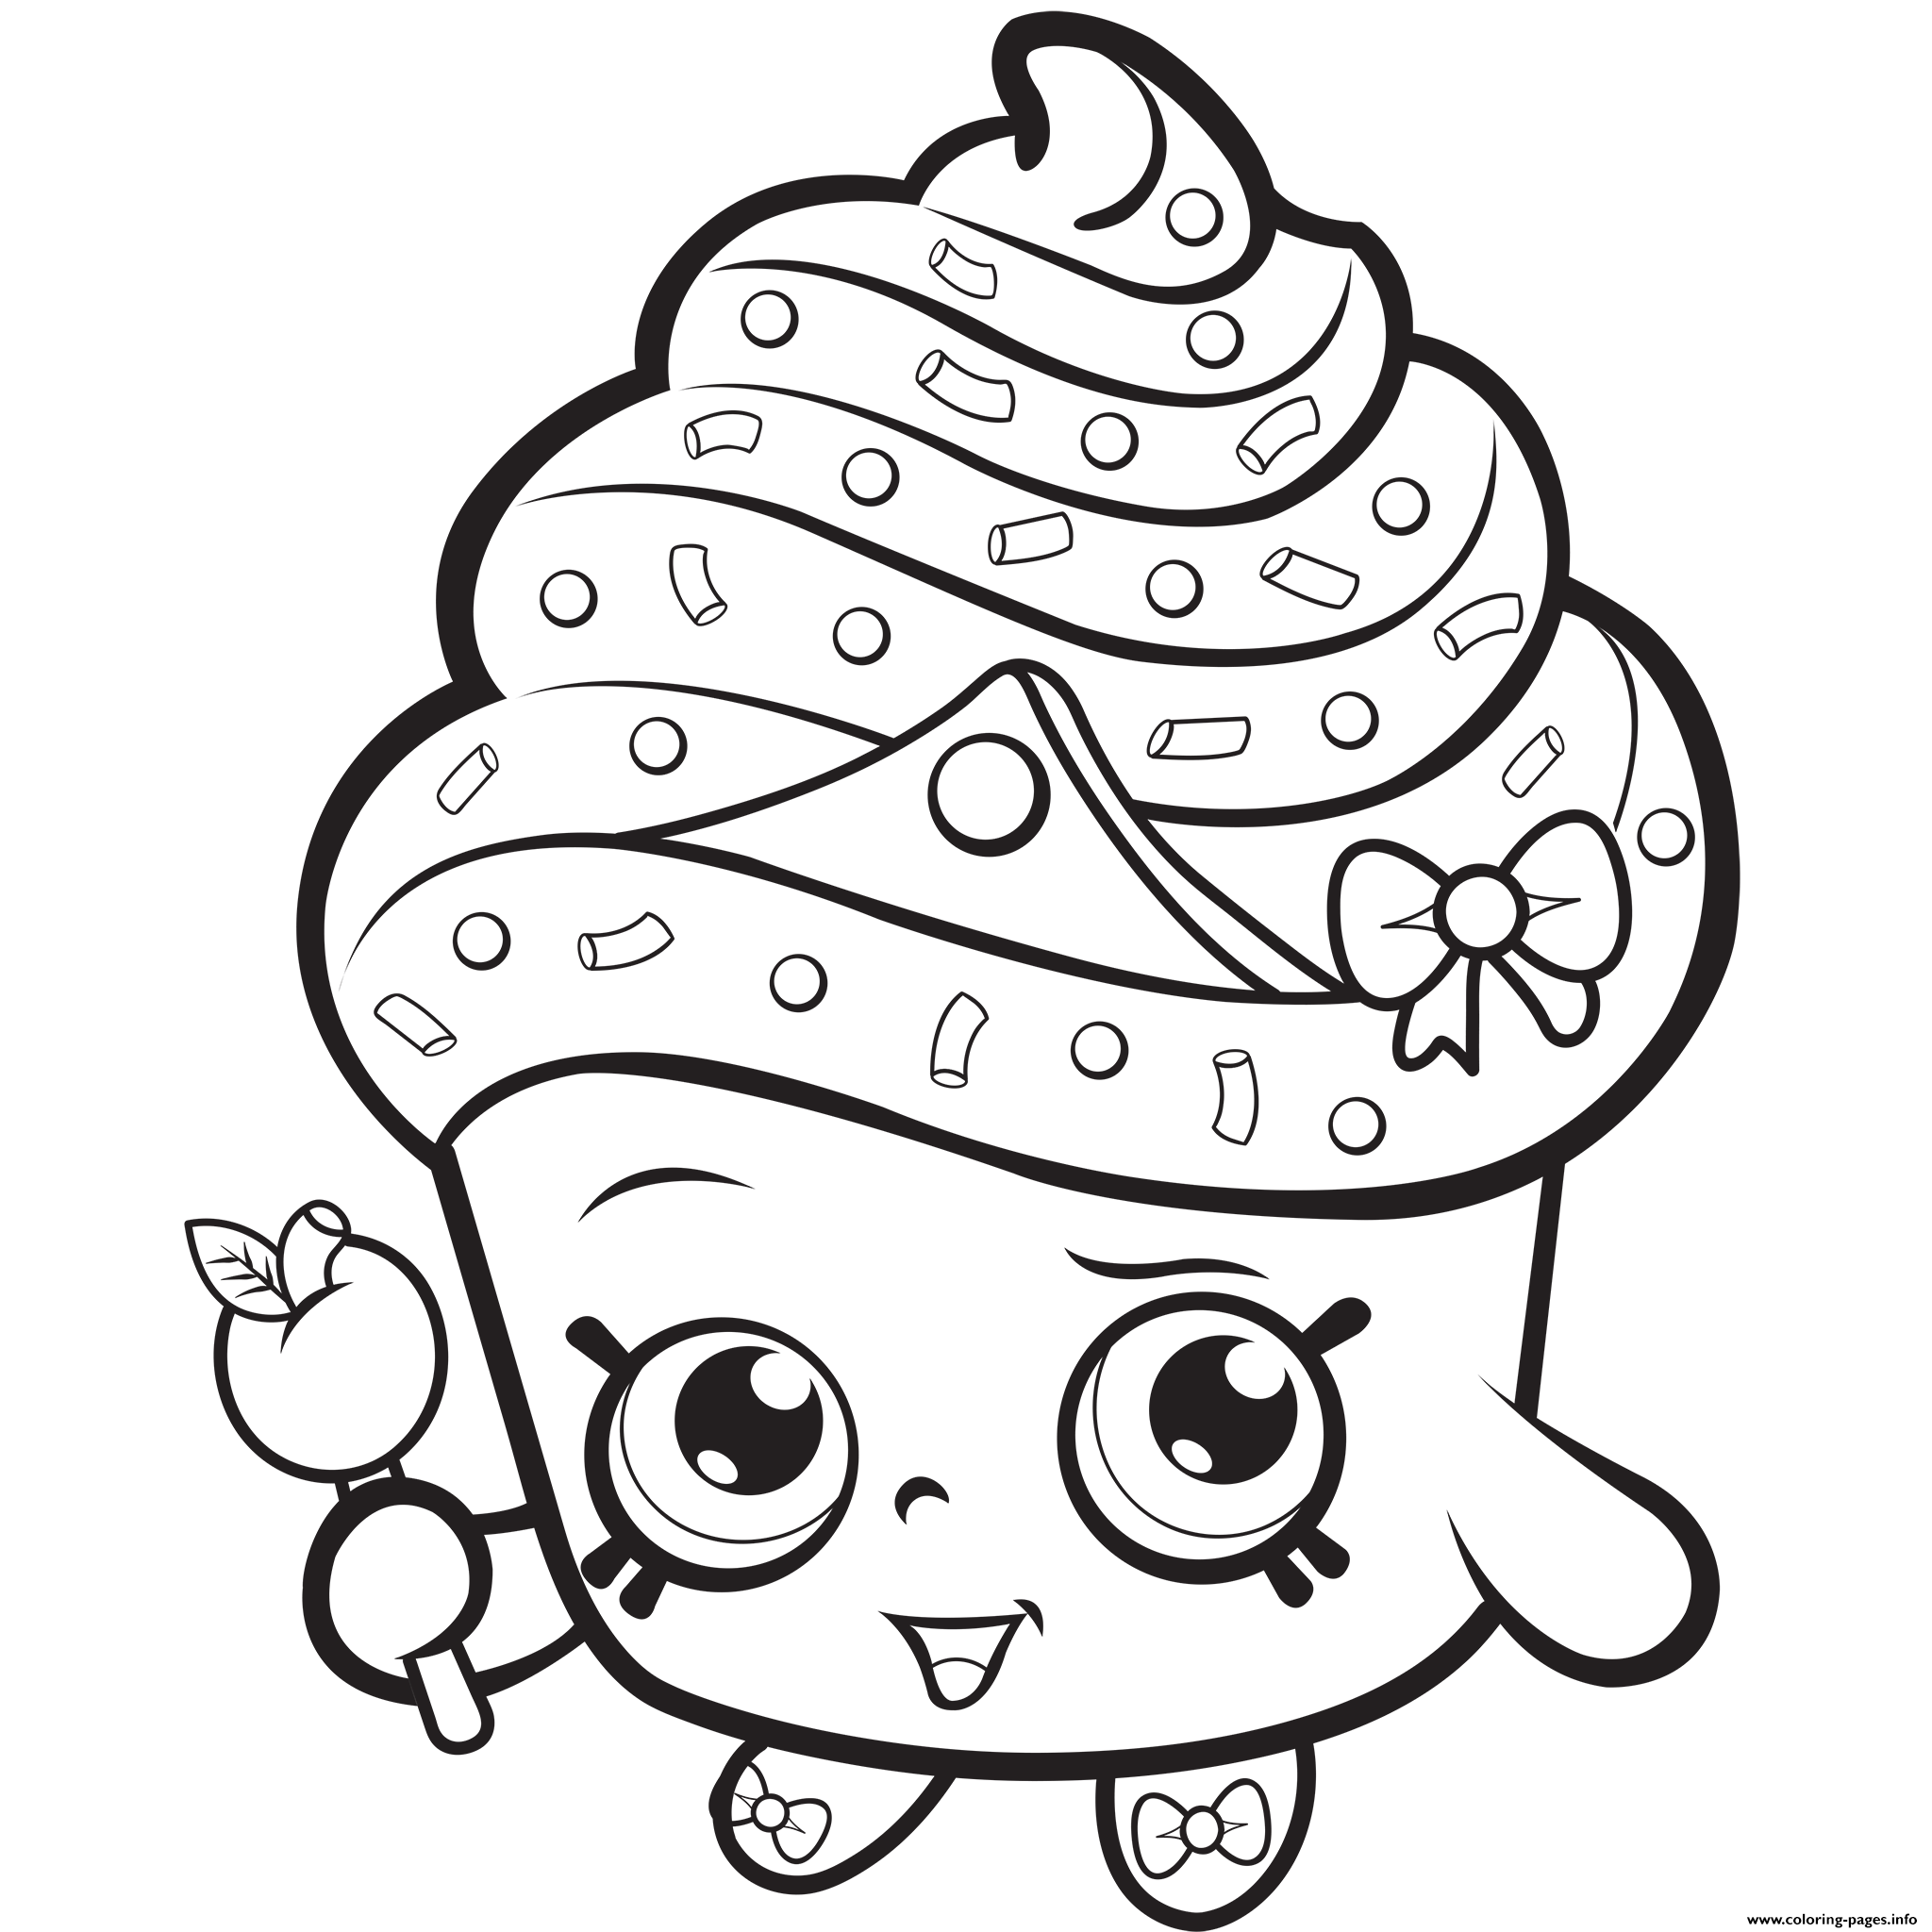 Unique Color Coloring Pages Ideas - Coloring Pages Of Animals ...